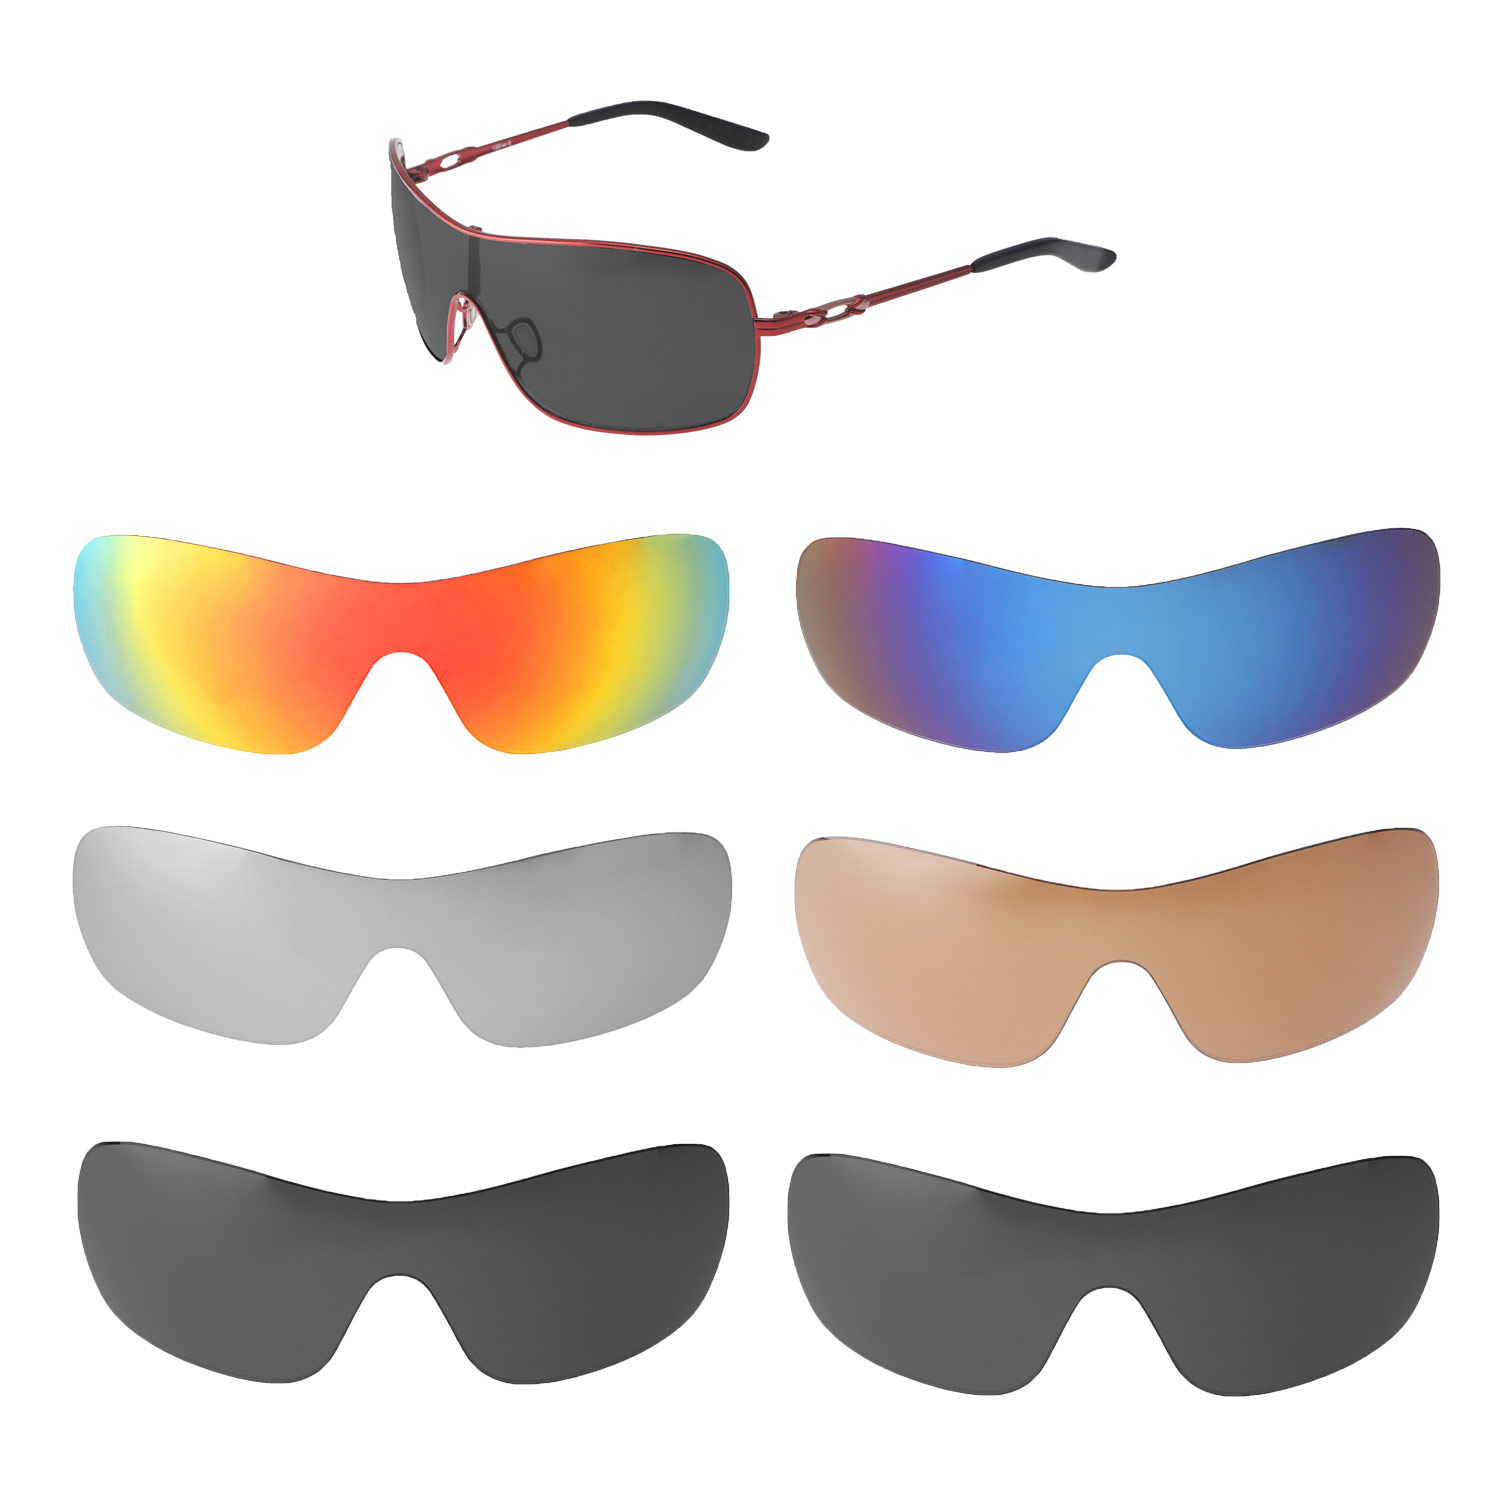 5c04fb8791 Details about Walleva Replacement Lenses for Oakley Distress Sunglasses -  Multiple Options